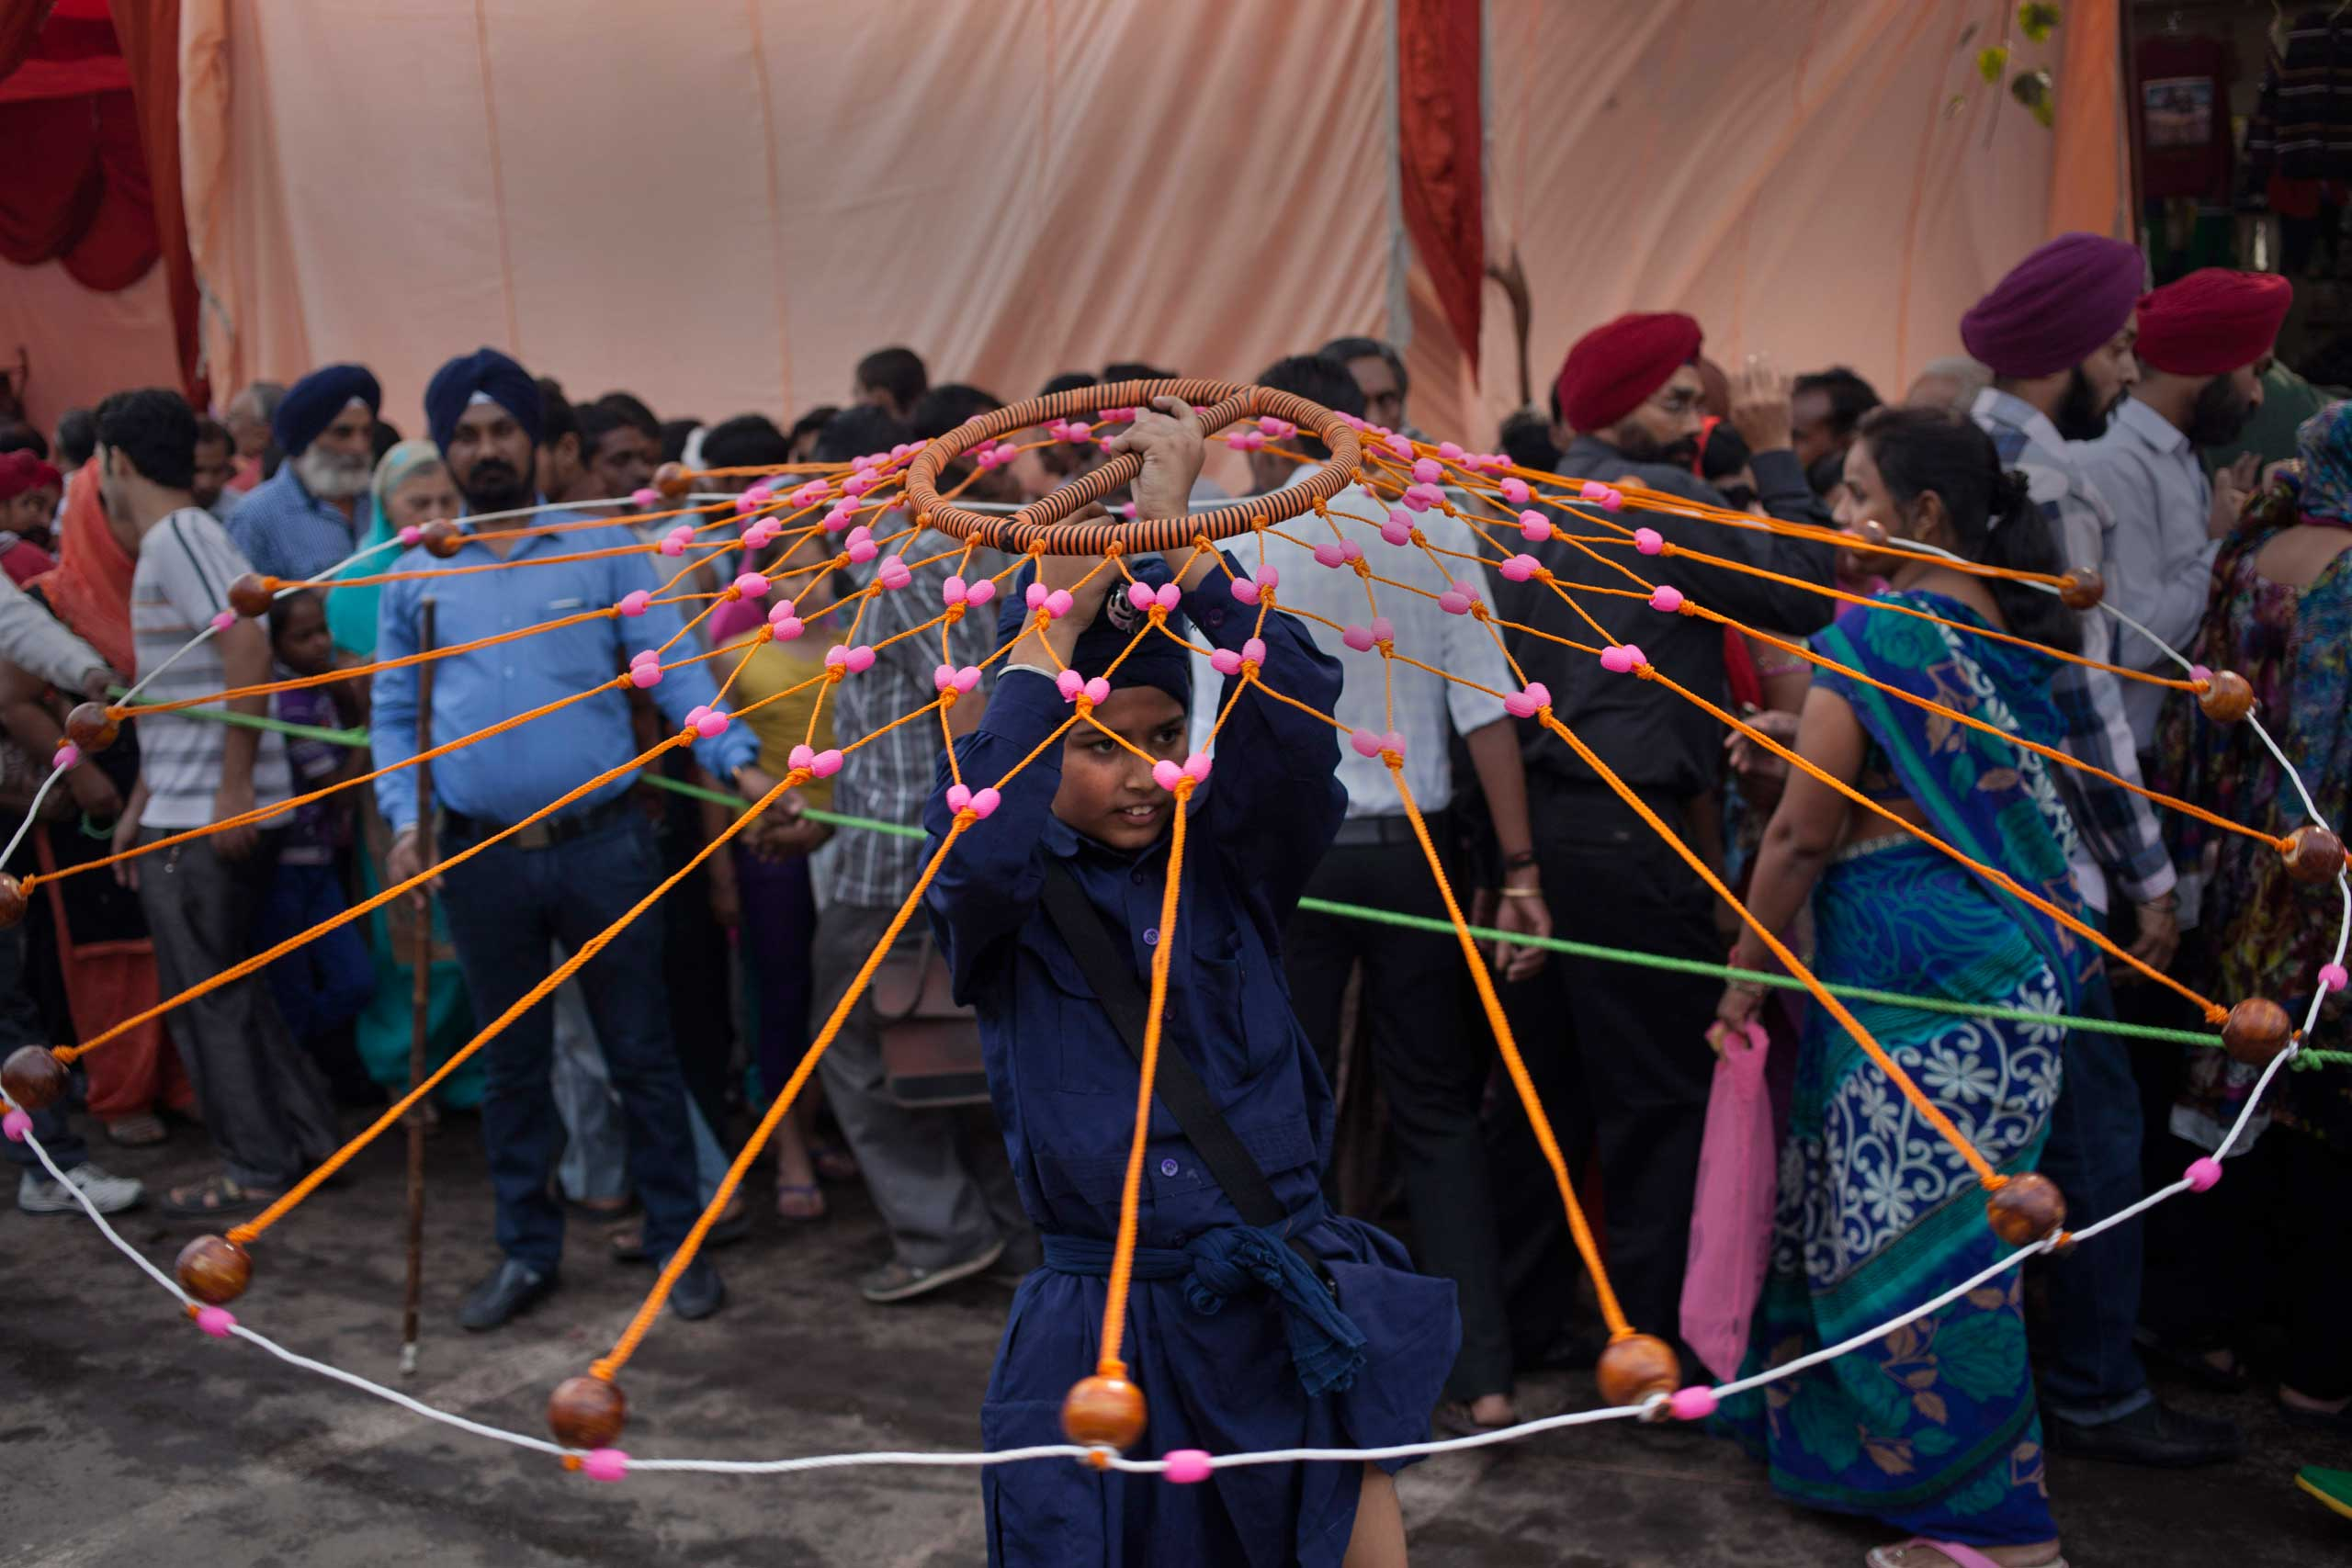 Nov. 5, 2014. An Indian Sikh boy displays his martial art skills during a religious procession on the eve of the birth anniversary of Guru Nanak, the first Sikh Guru, in New Delhi.